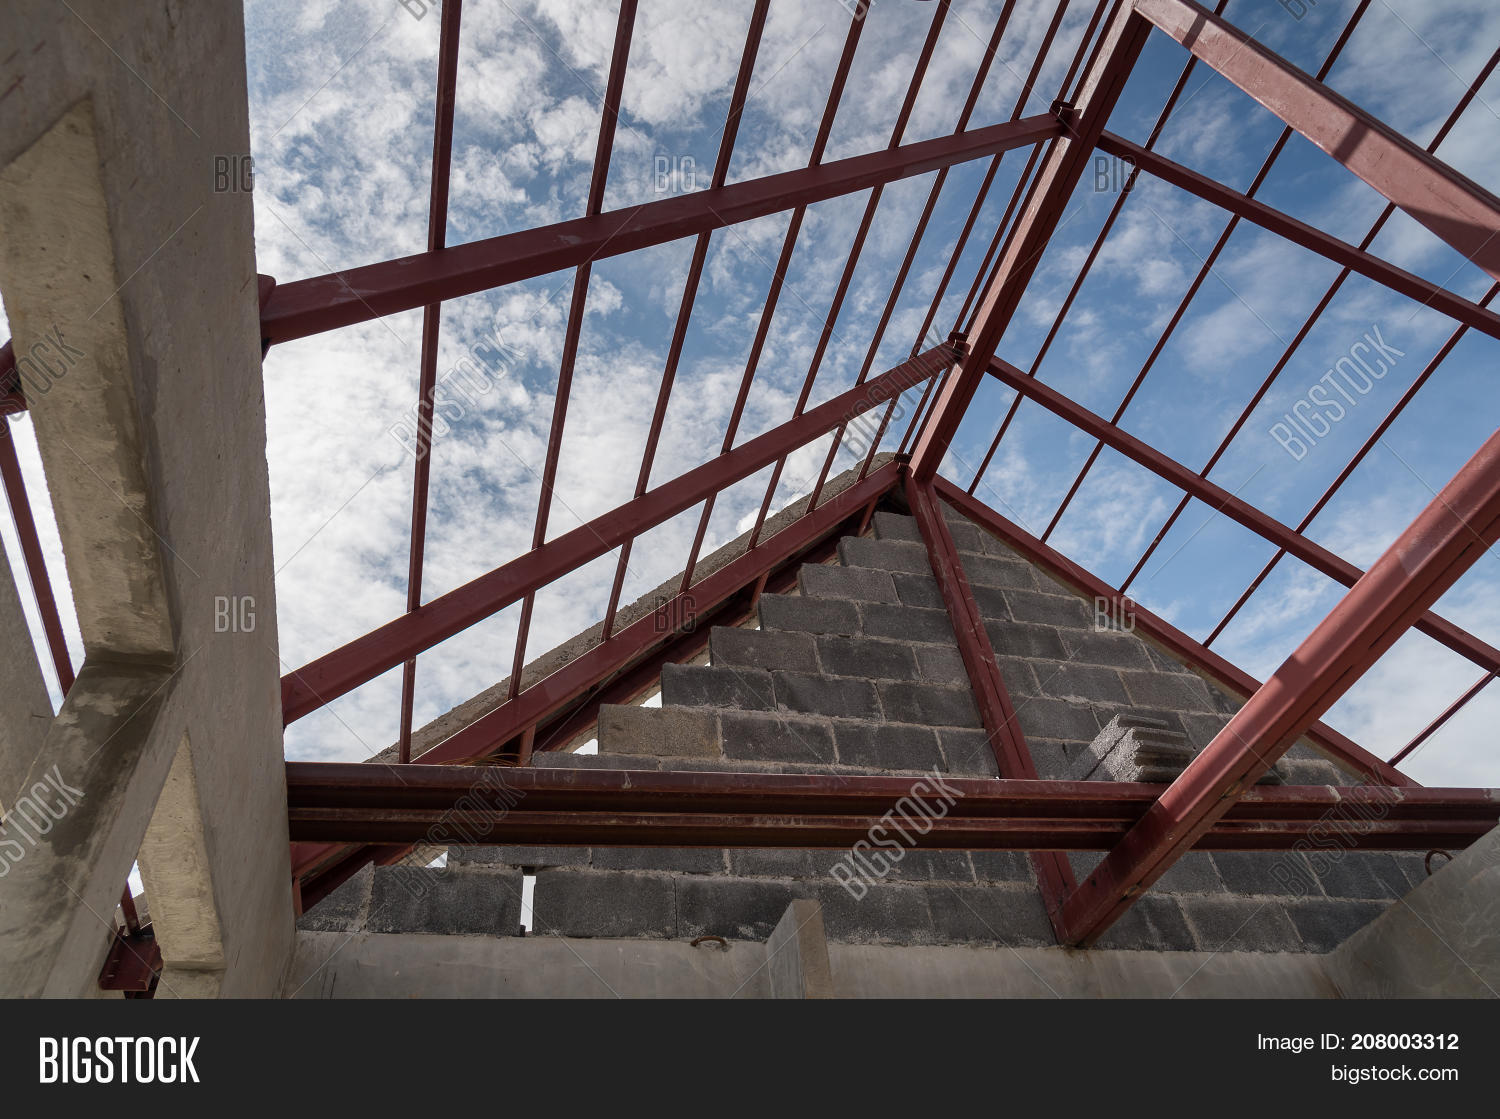 Structural Steel Roof Image Photo Free Trial Bigstock